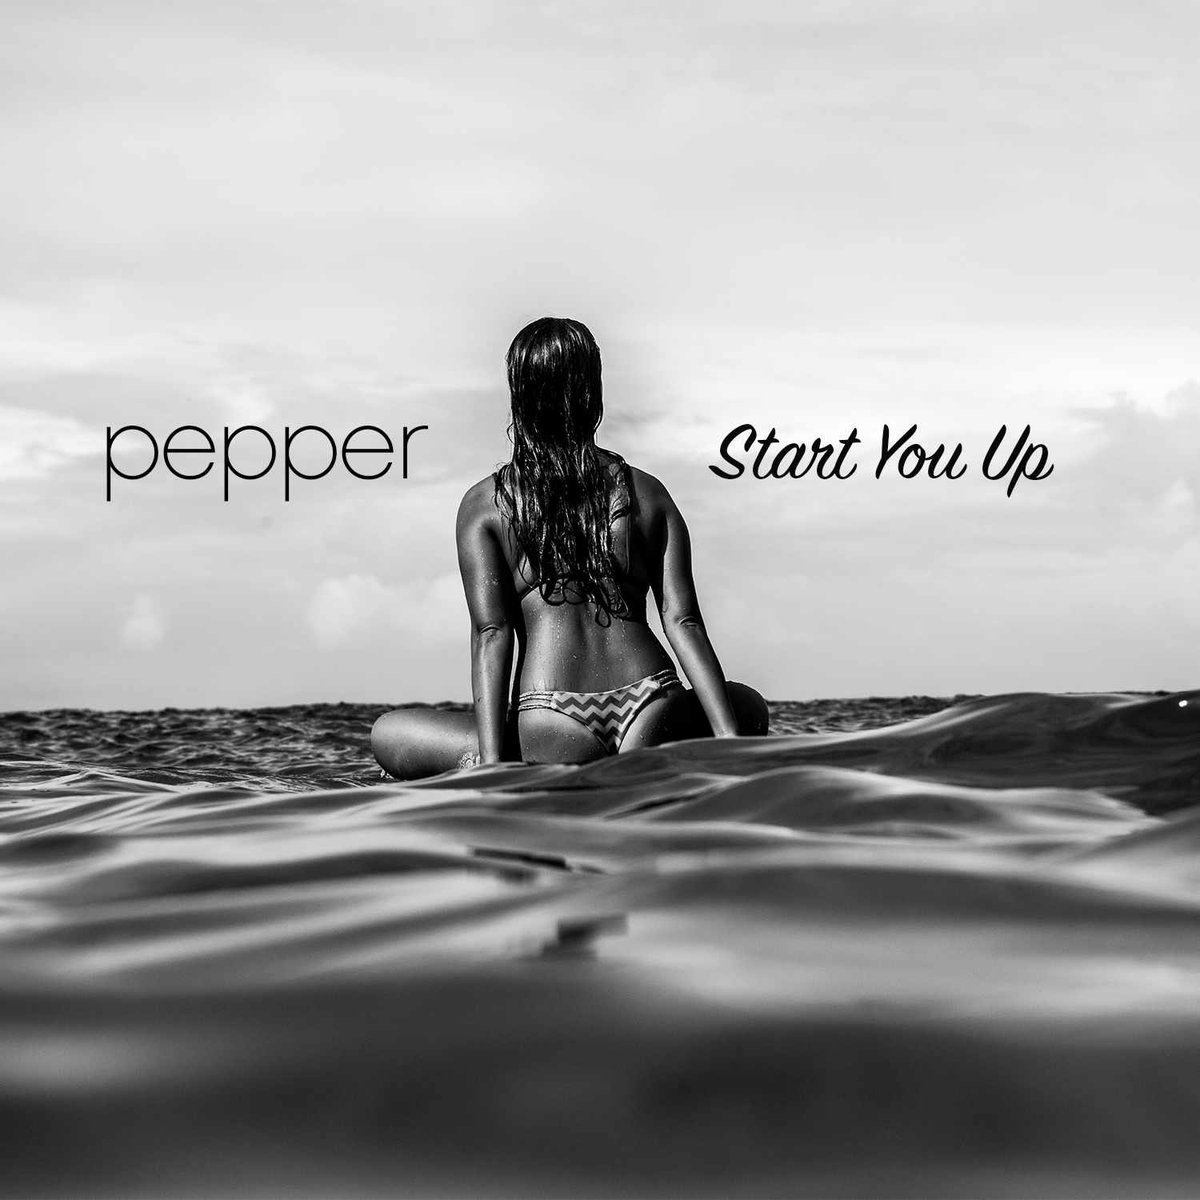 """Start You Up"" Available Now: https://t.co/IcsPtvfjv8.  Featuring re-mixes by @TheGreen808 and @SlightlyStoopid https://t.co/BMJt4I4Esp"